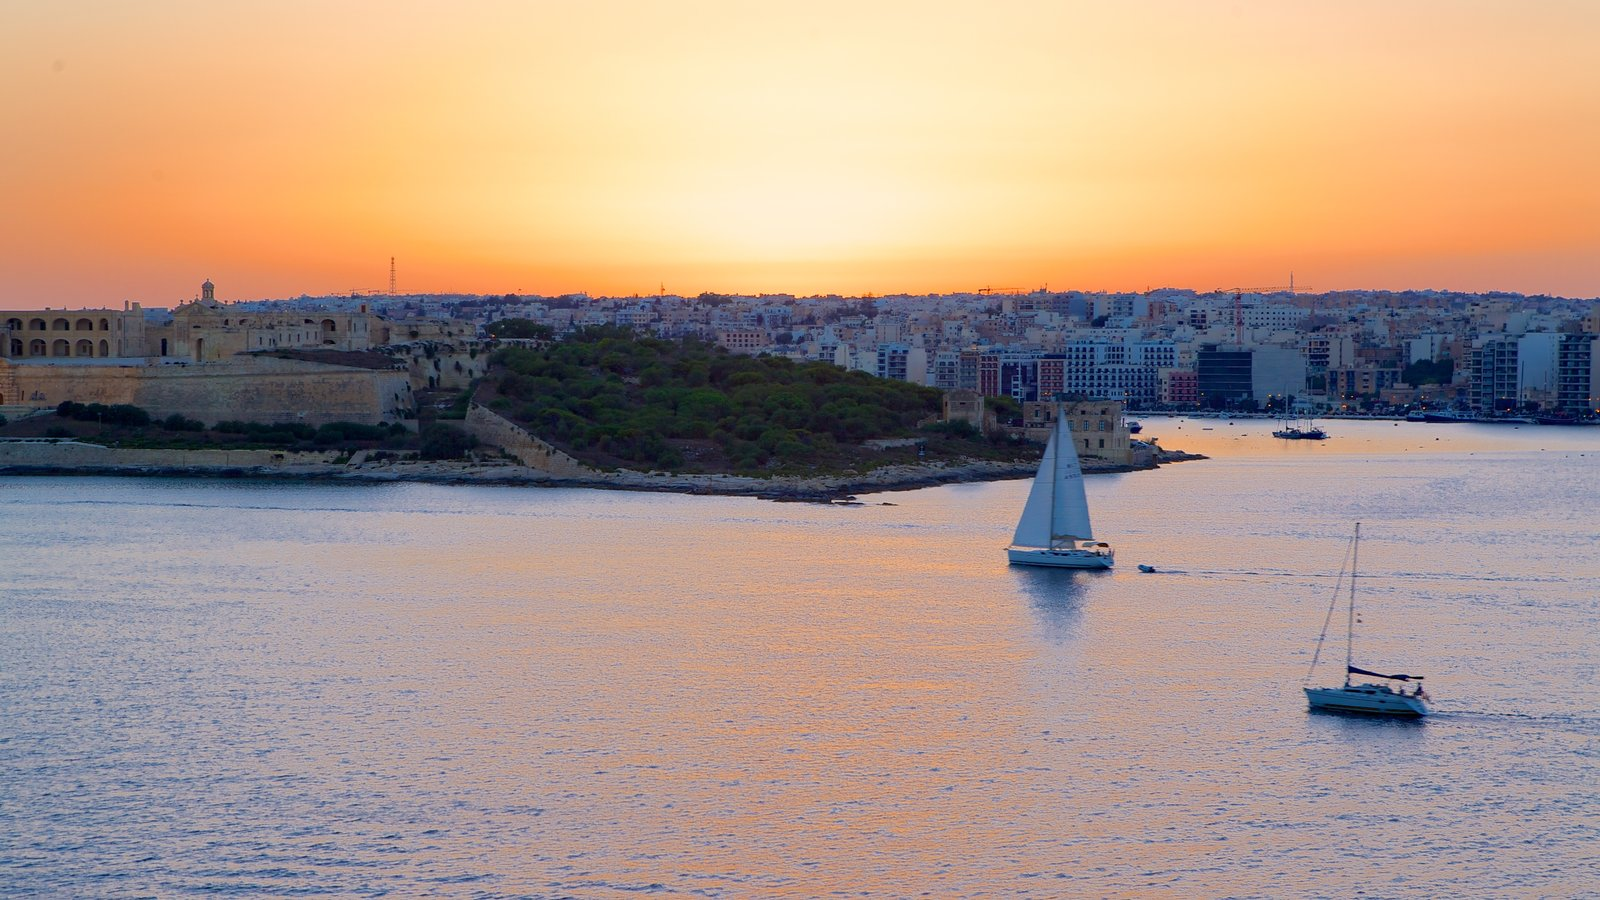 Valletta which includes a sunset and a coastal town